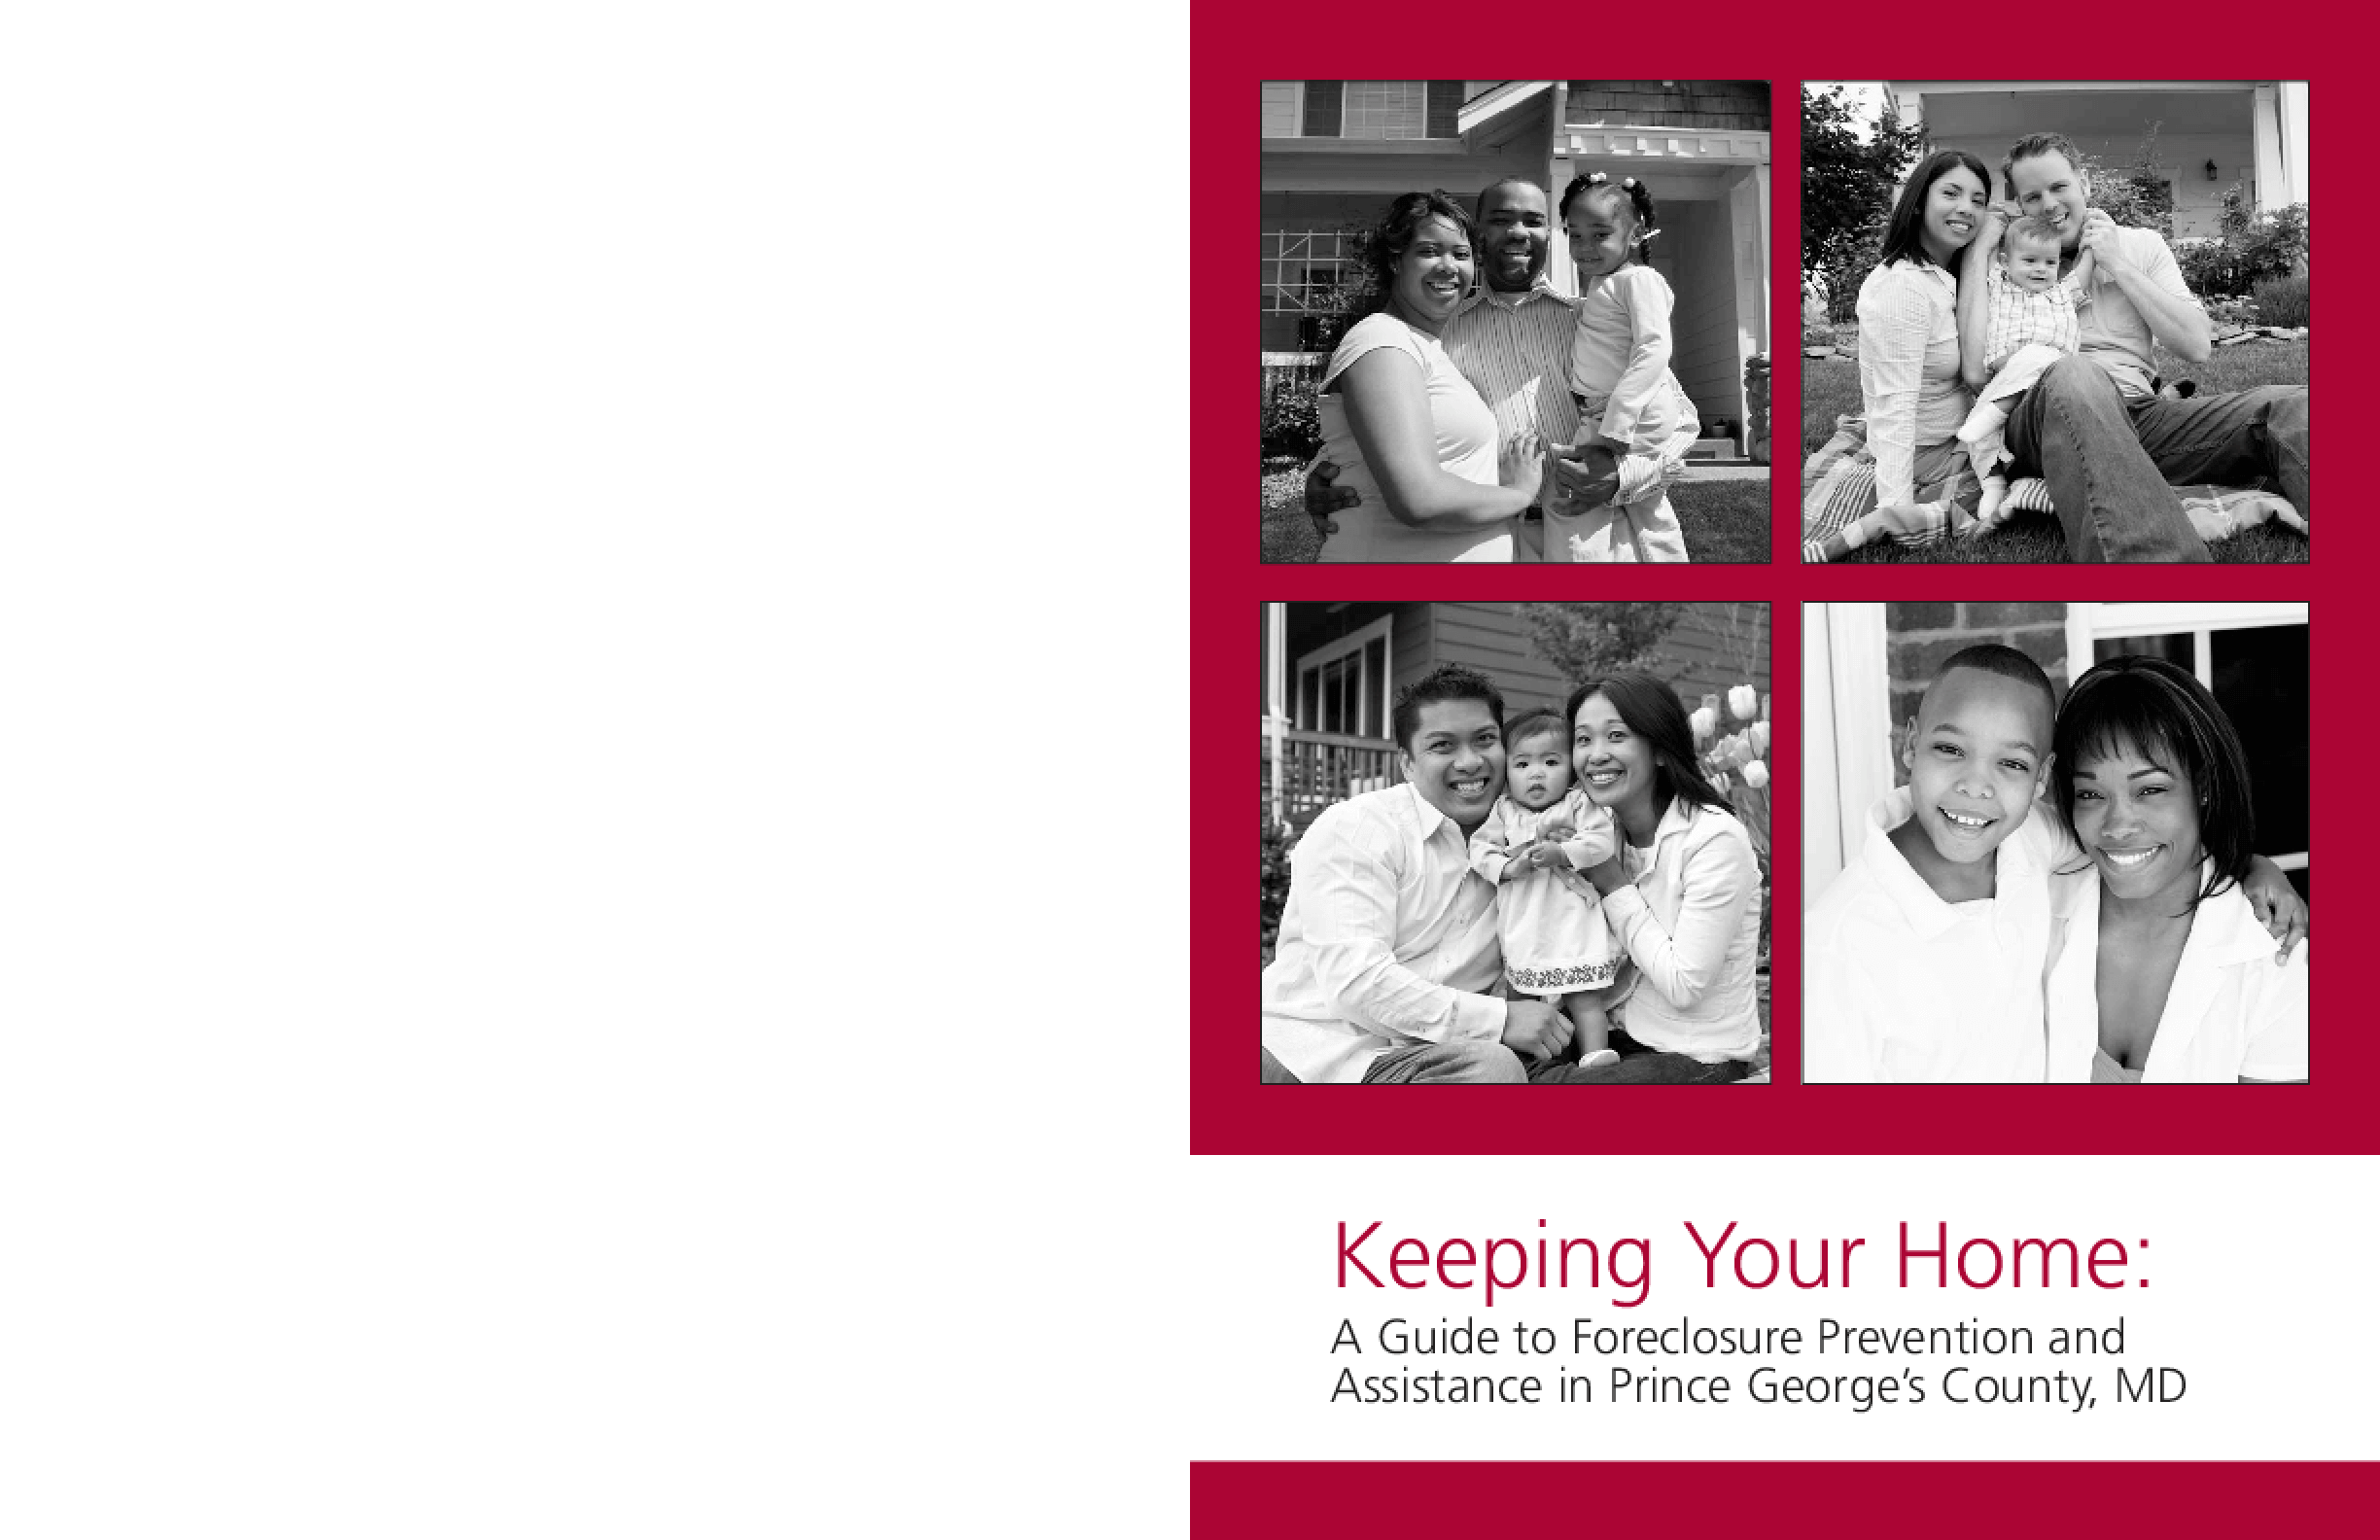 Keeping Your Home: A Guide to Foreclosure Prevention and Assistance in Prince George's County, MD